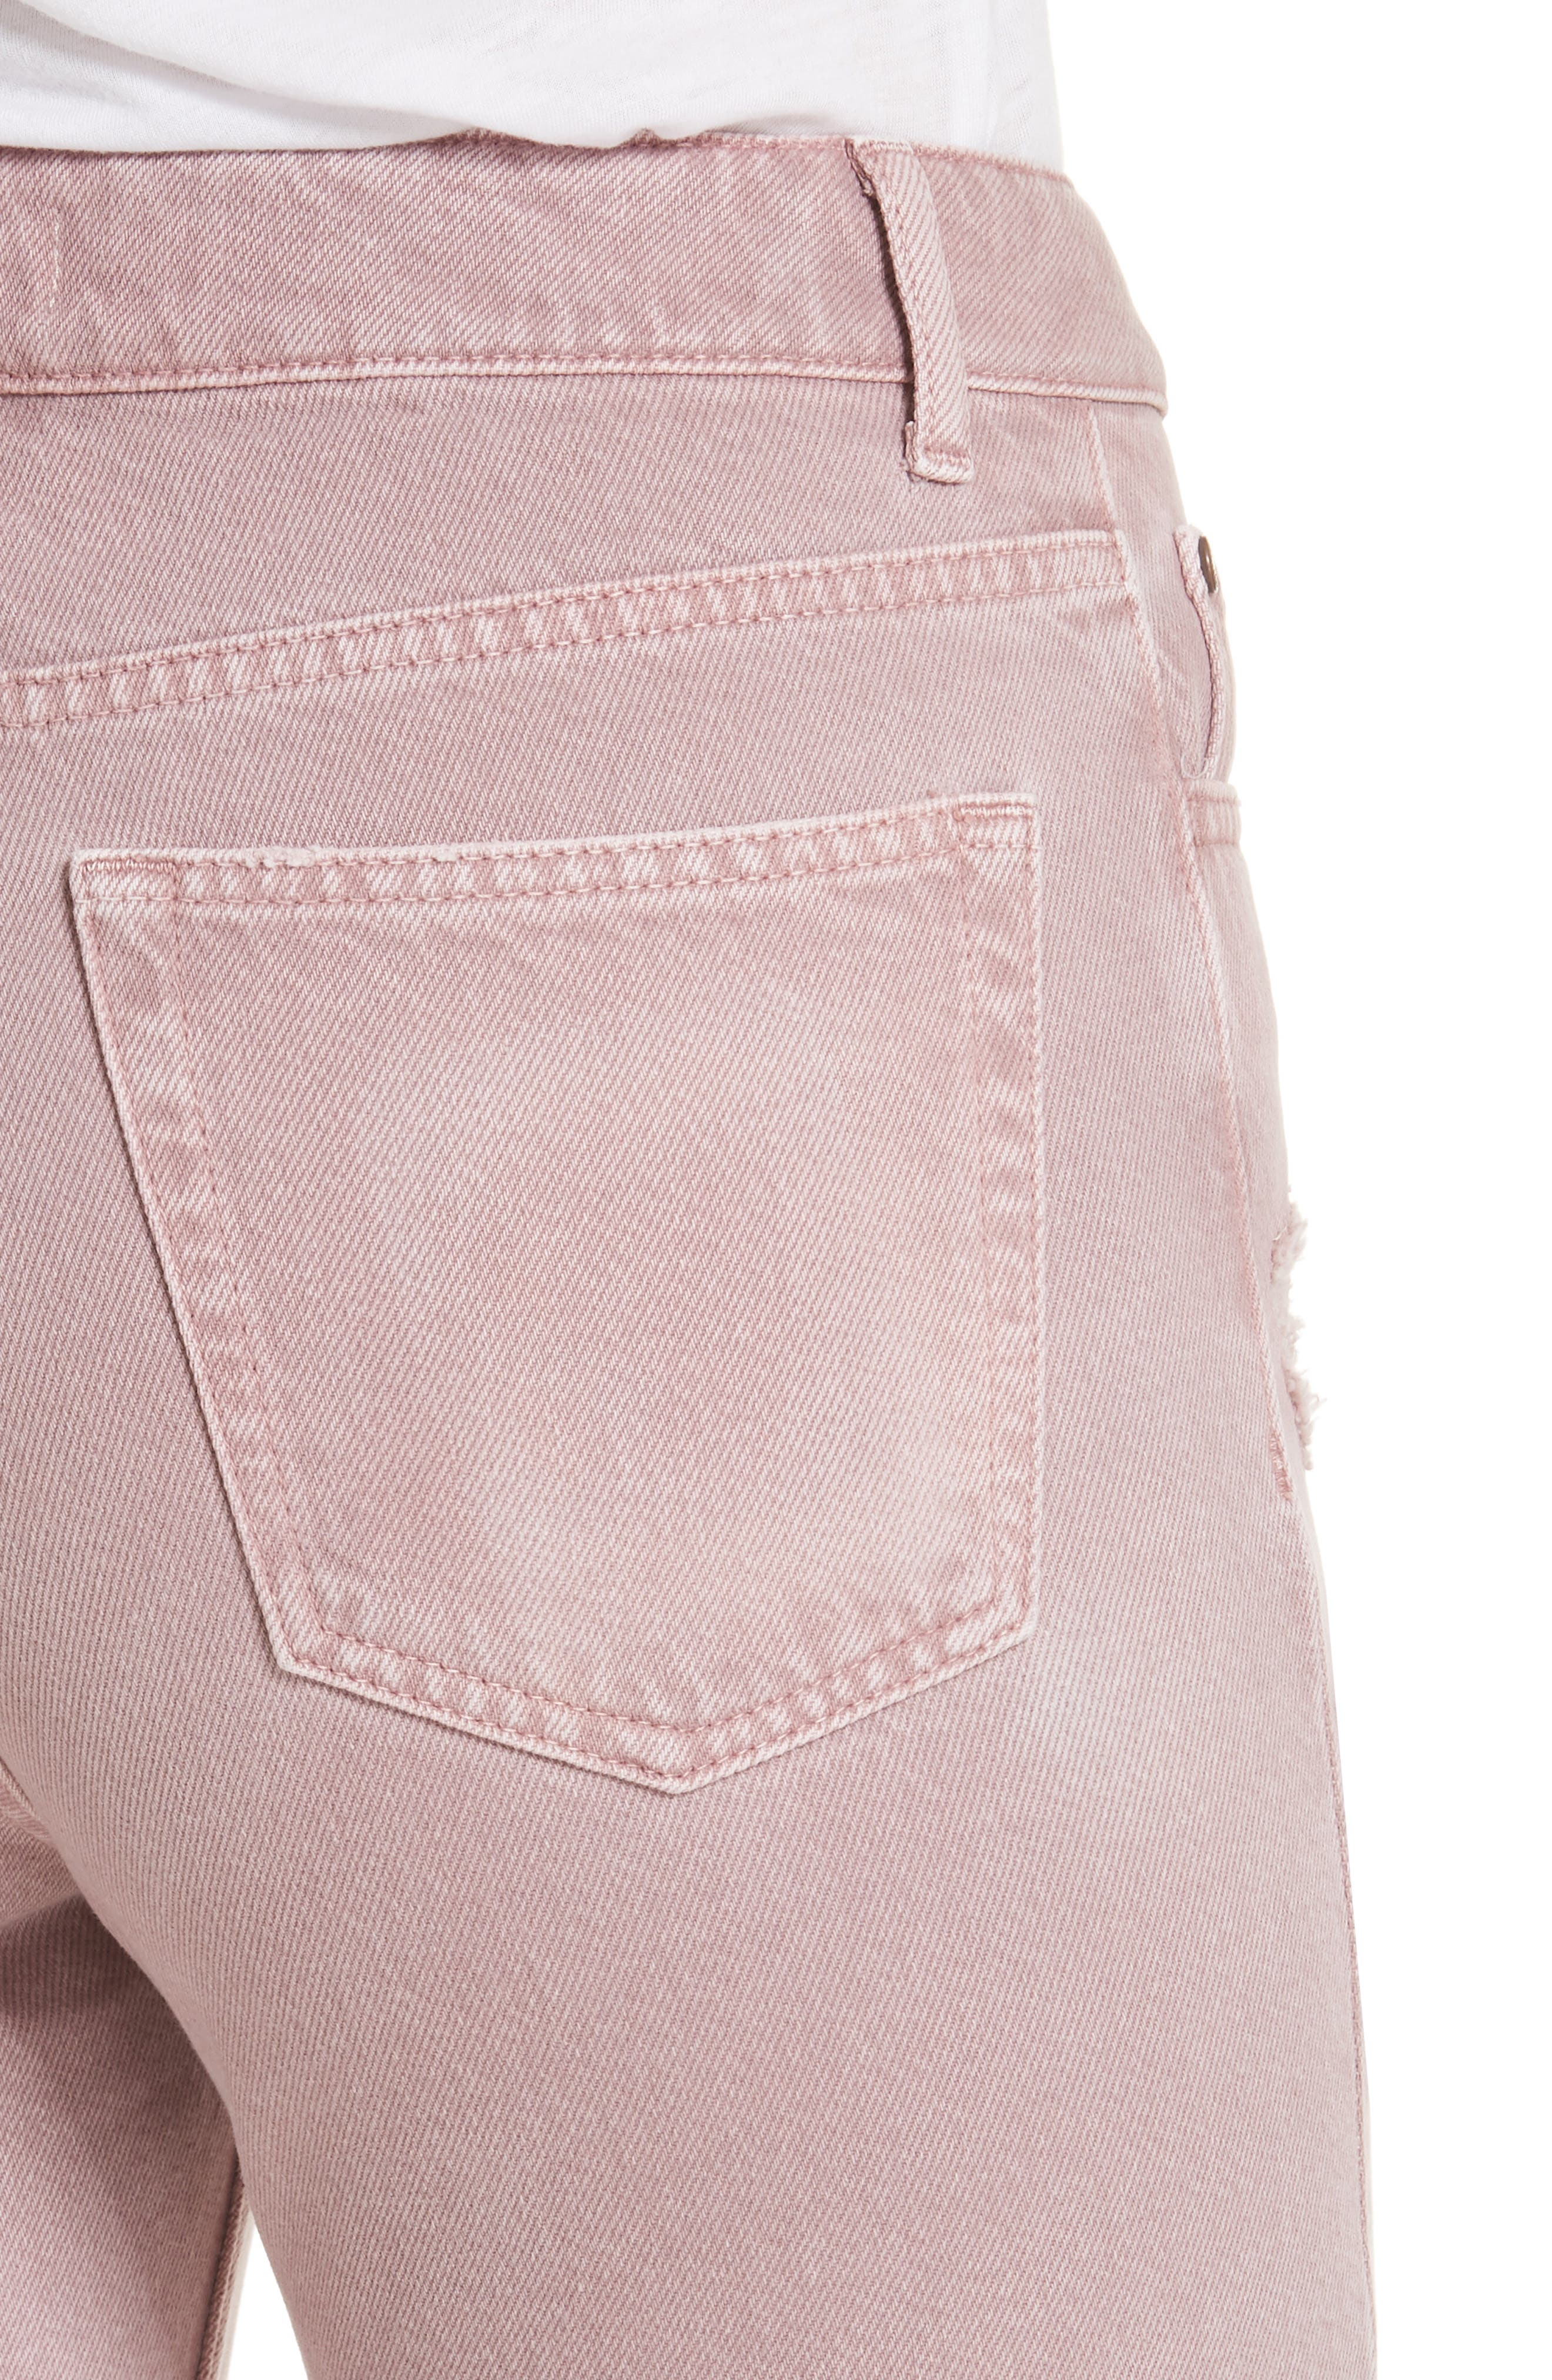 Ripped Raw Edge Jeans,                             Alternate thumbnail 4, color,                             Rose